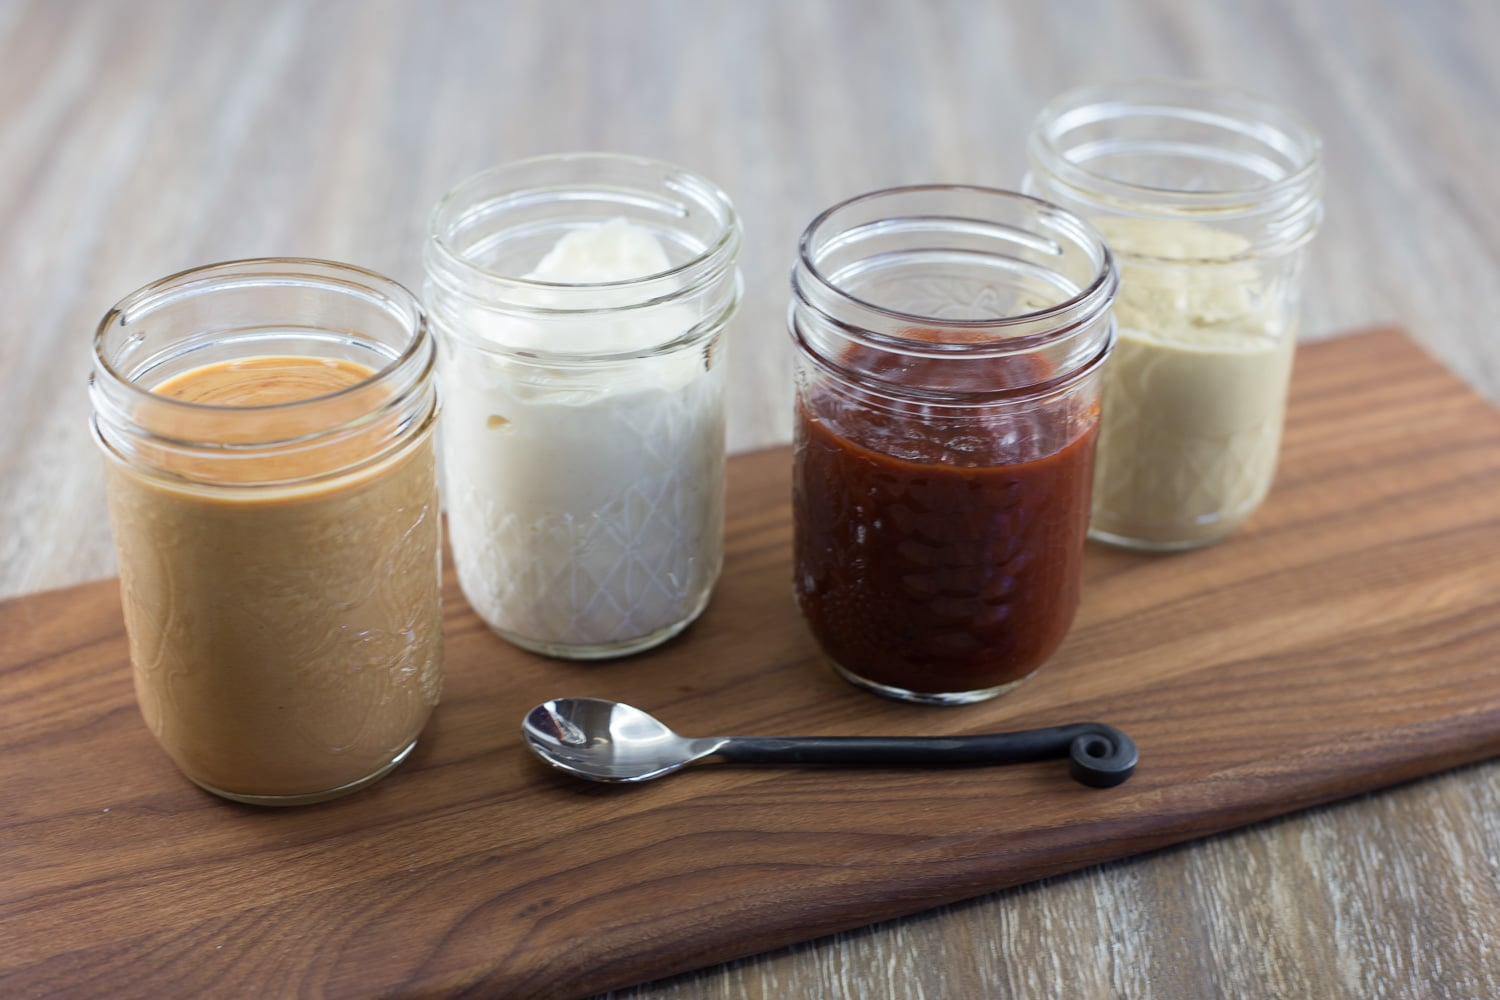 Kick up those boring condiments by adding some extra flavor!